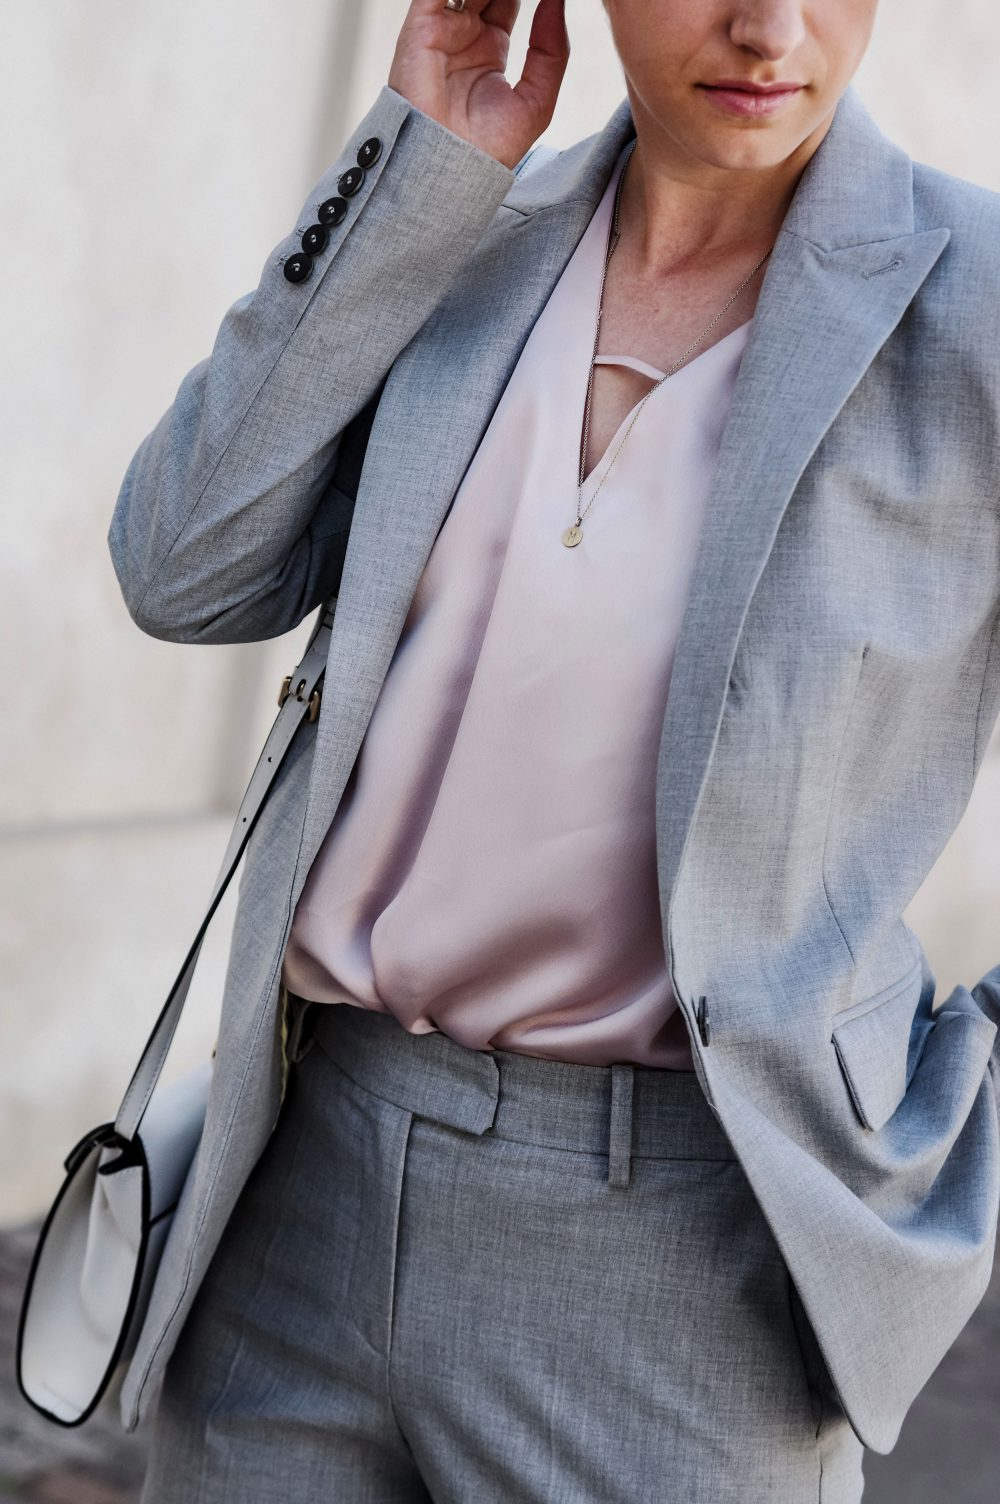 12 summer blazers for work and casual, summer suit, work wear, stylish work wear, summer fashion, summer stye 1